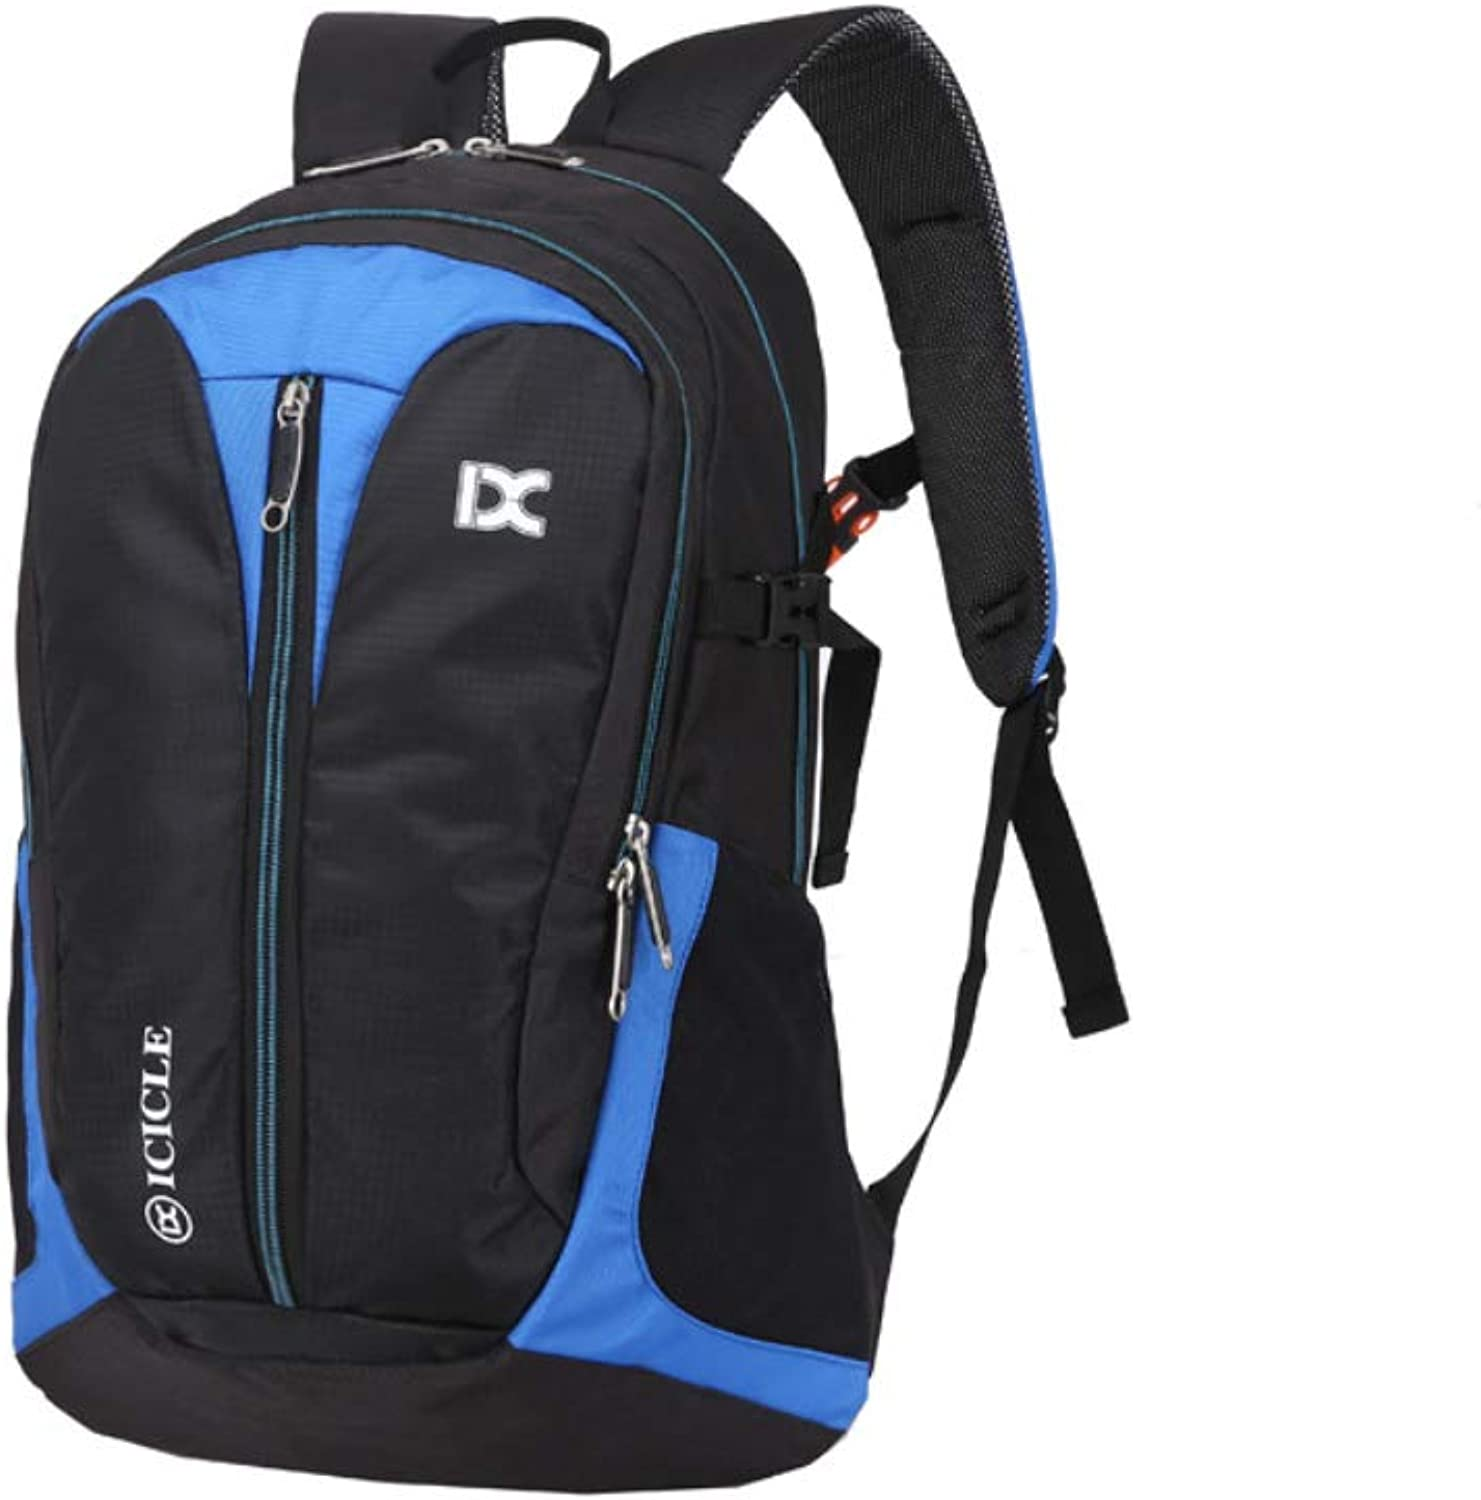 Laptop Backpack,Large Capacity Travel Computer Backpack with Organizer Pockets